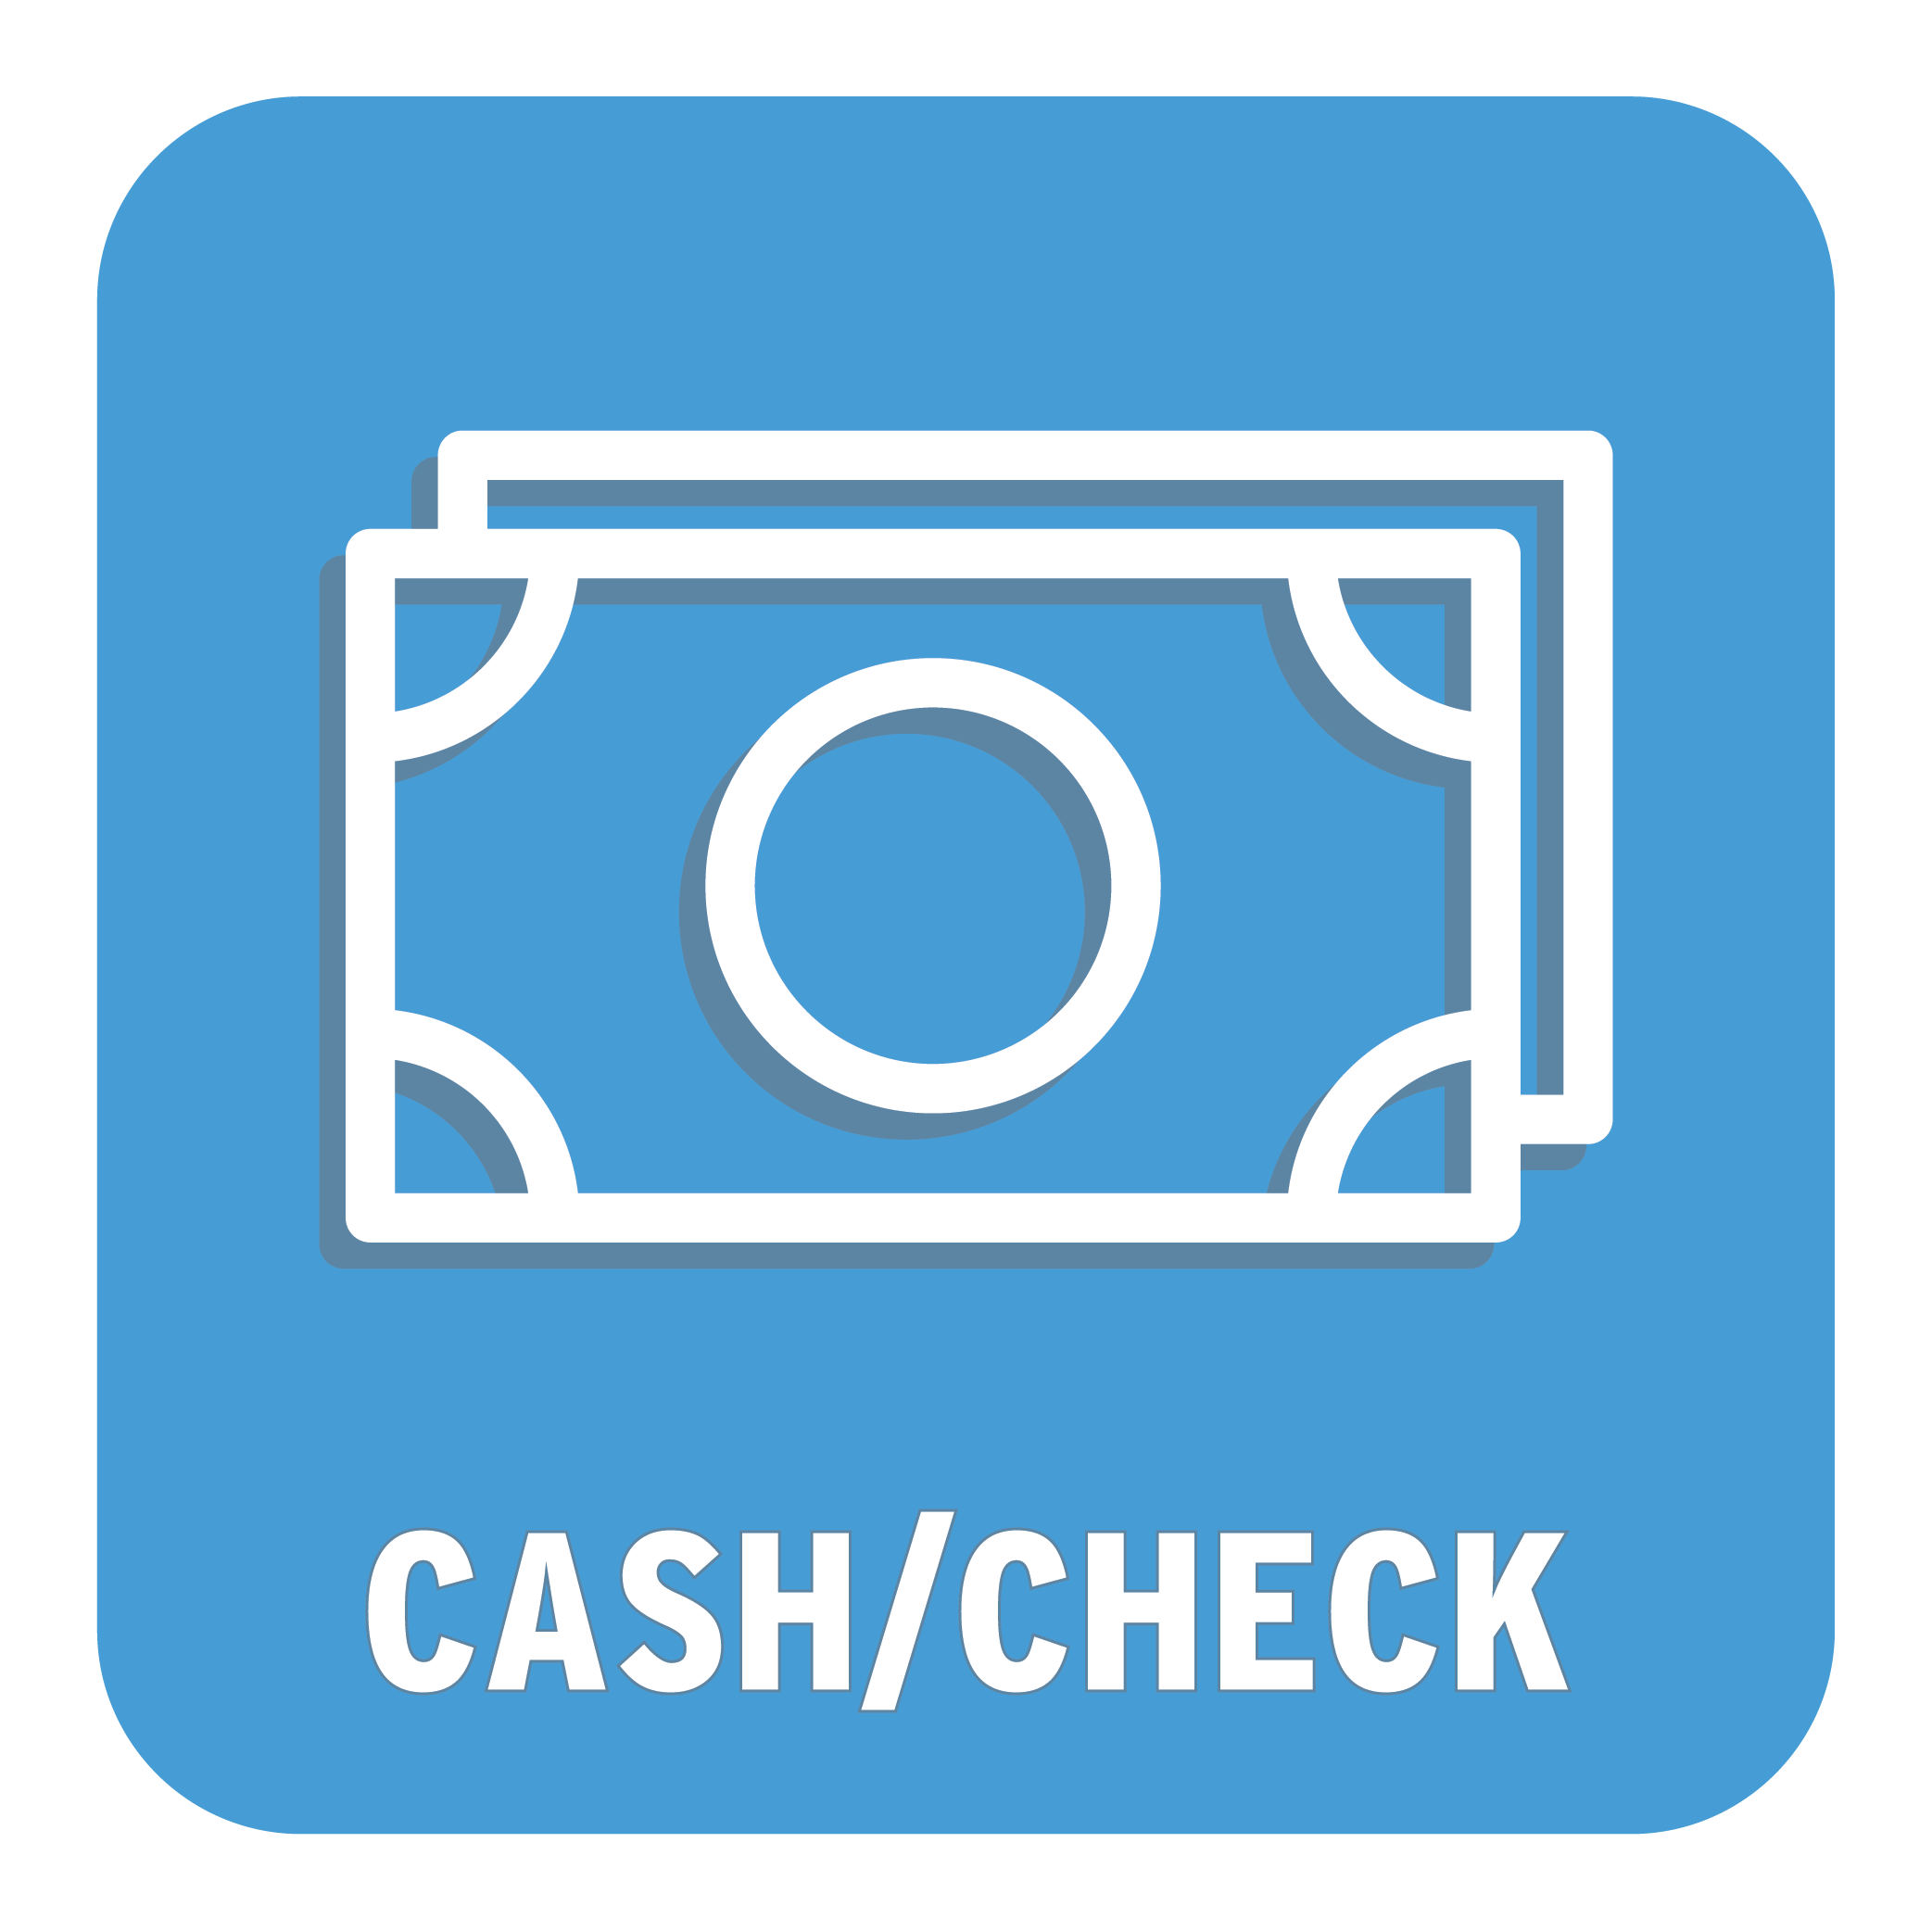 How to Give (Cash or Check)